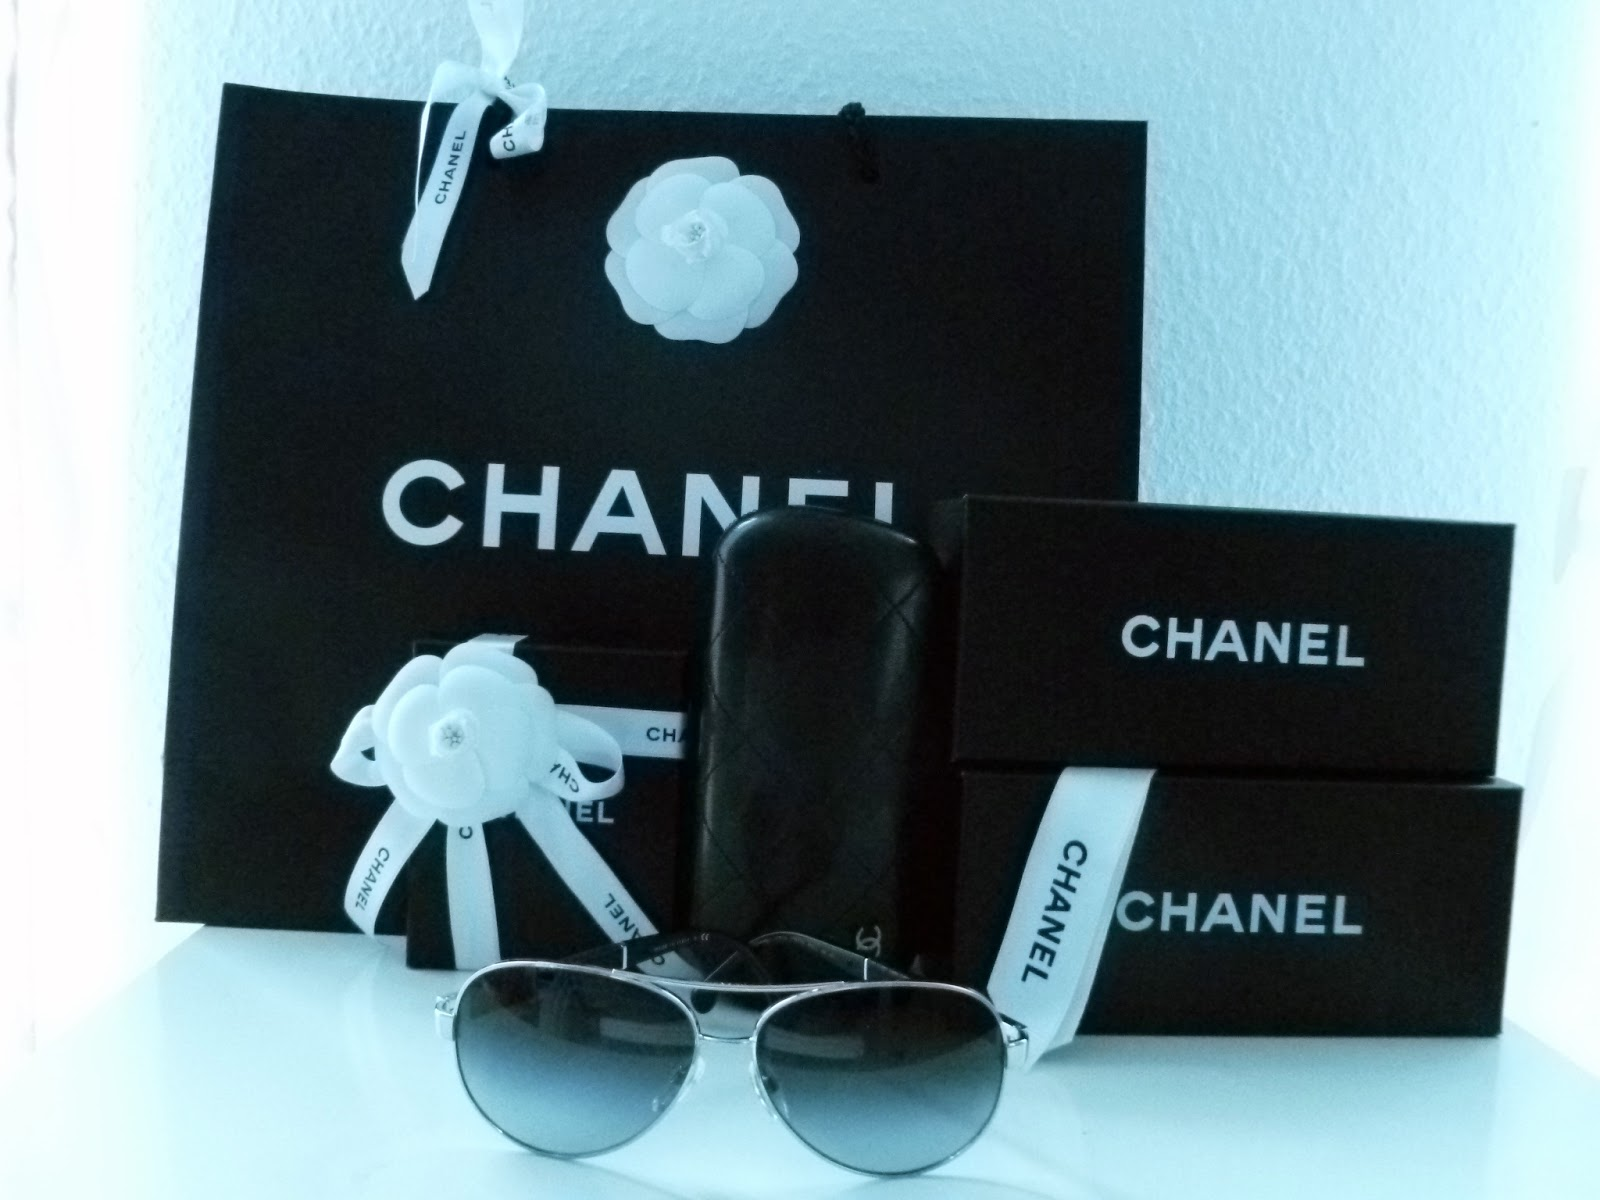 c67e07a6f50 The next pair I purchased are the round oversized acetate sunglasses